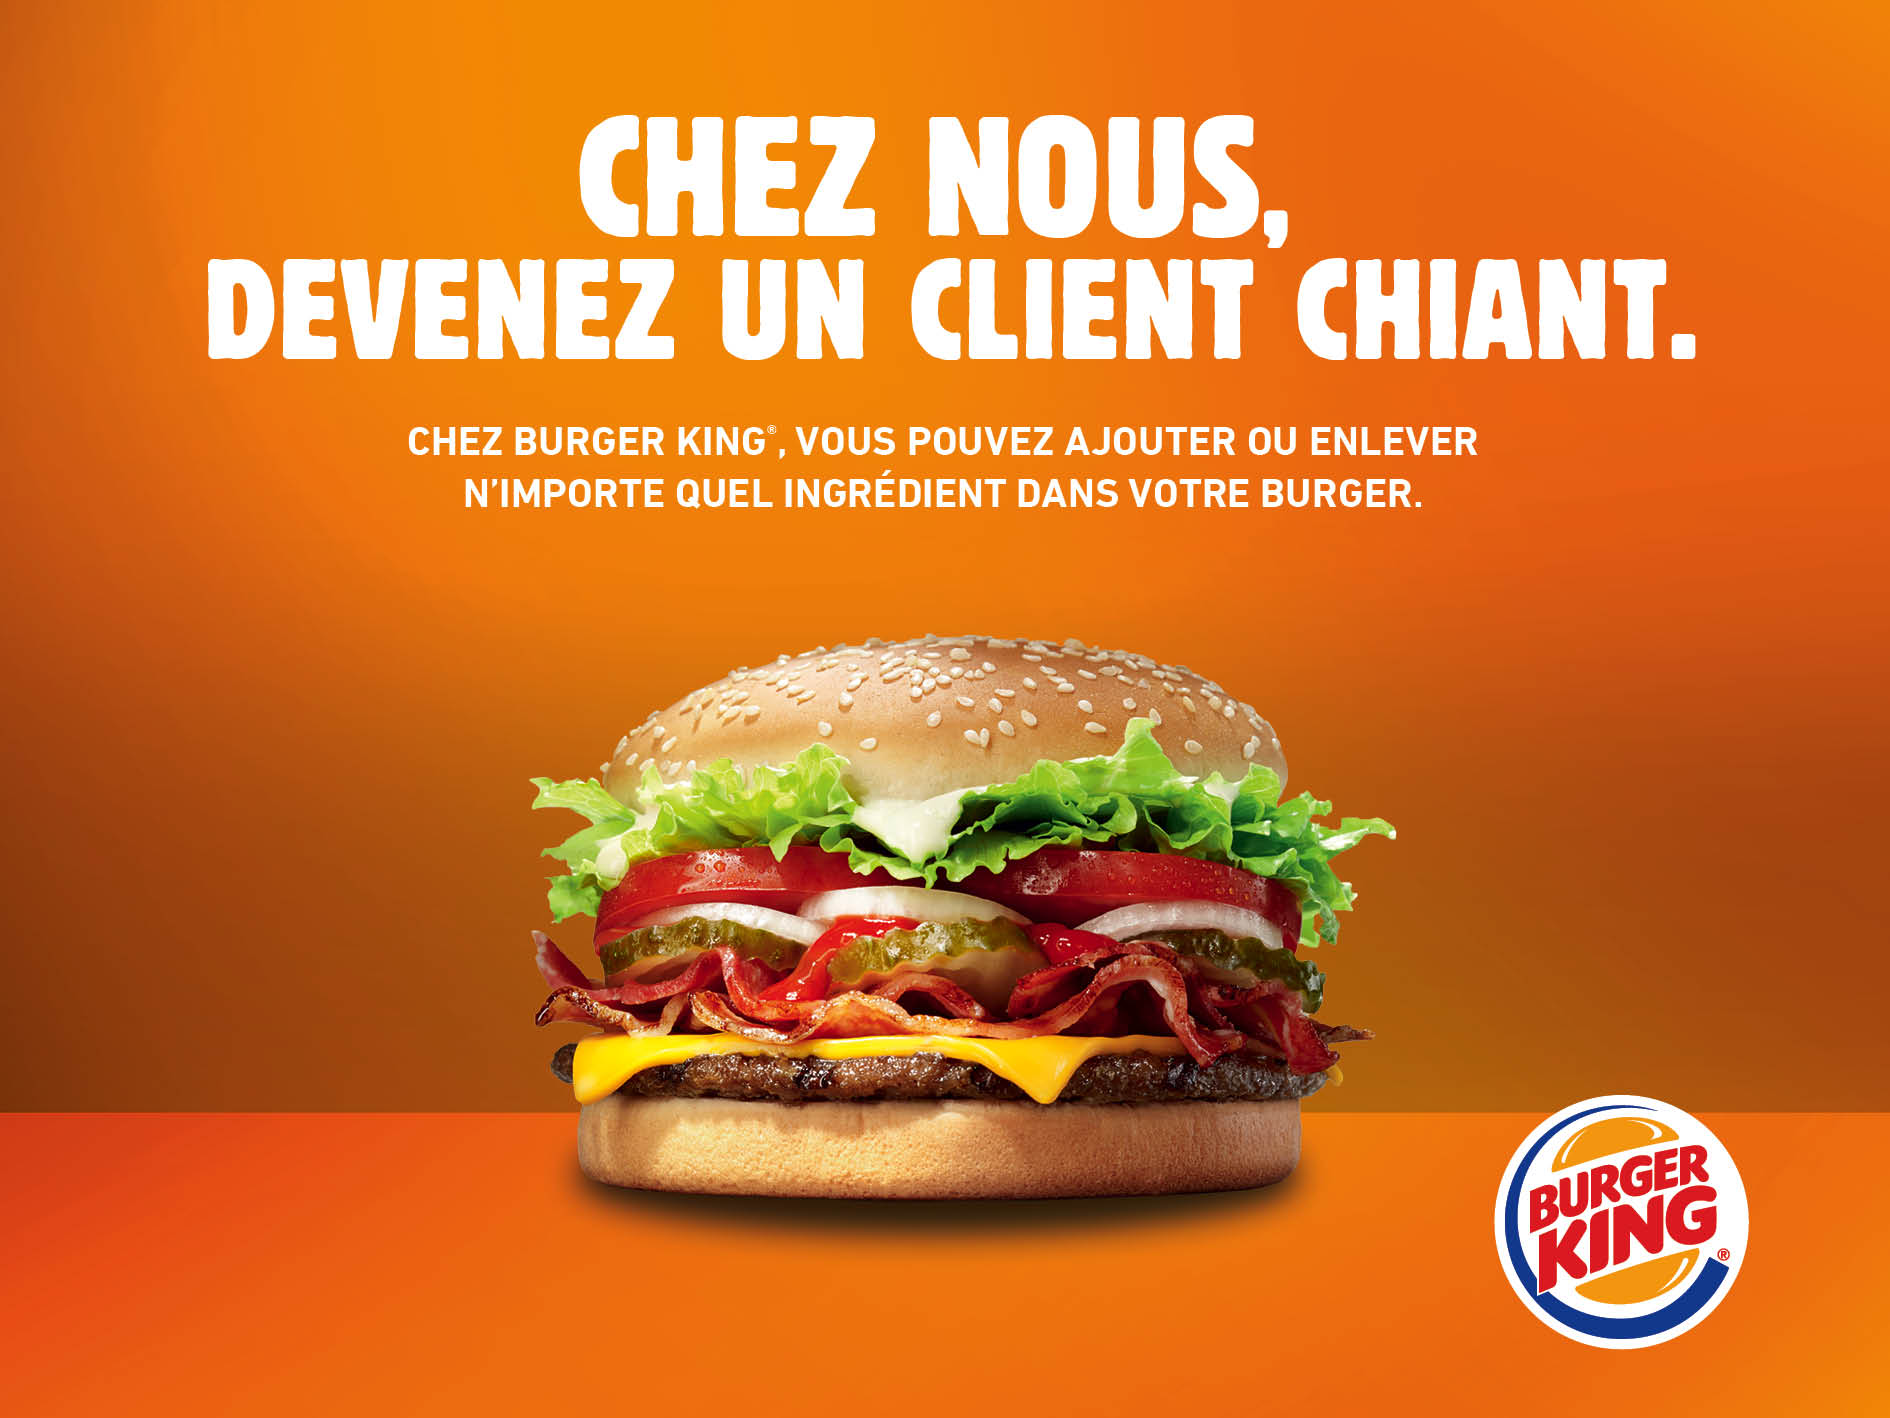 burger-king-publicite-marketing-fast-food-burger-ingredients-client-chiant-novembre-2015